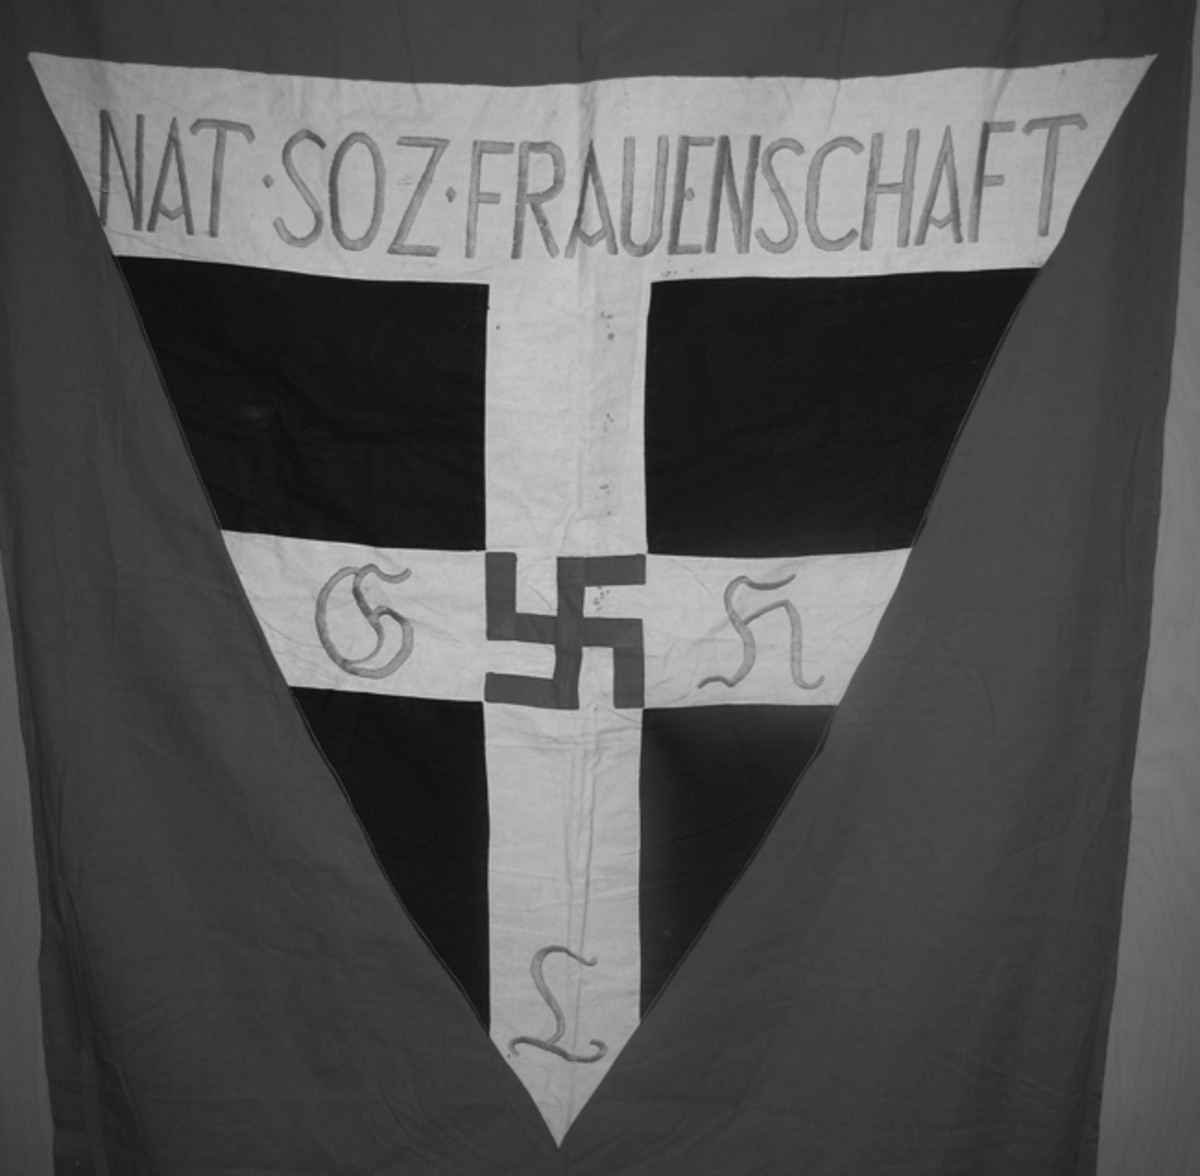 Hand-sewn NSF banners were often hung on the walls of the women's meeting places to give them a more formal appearance.